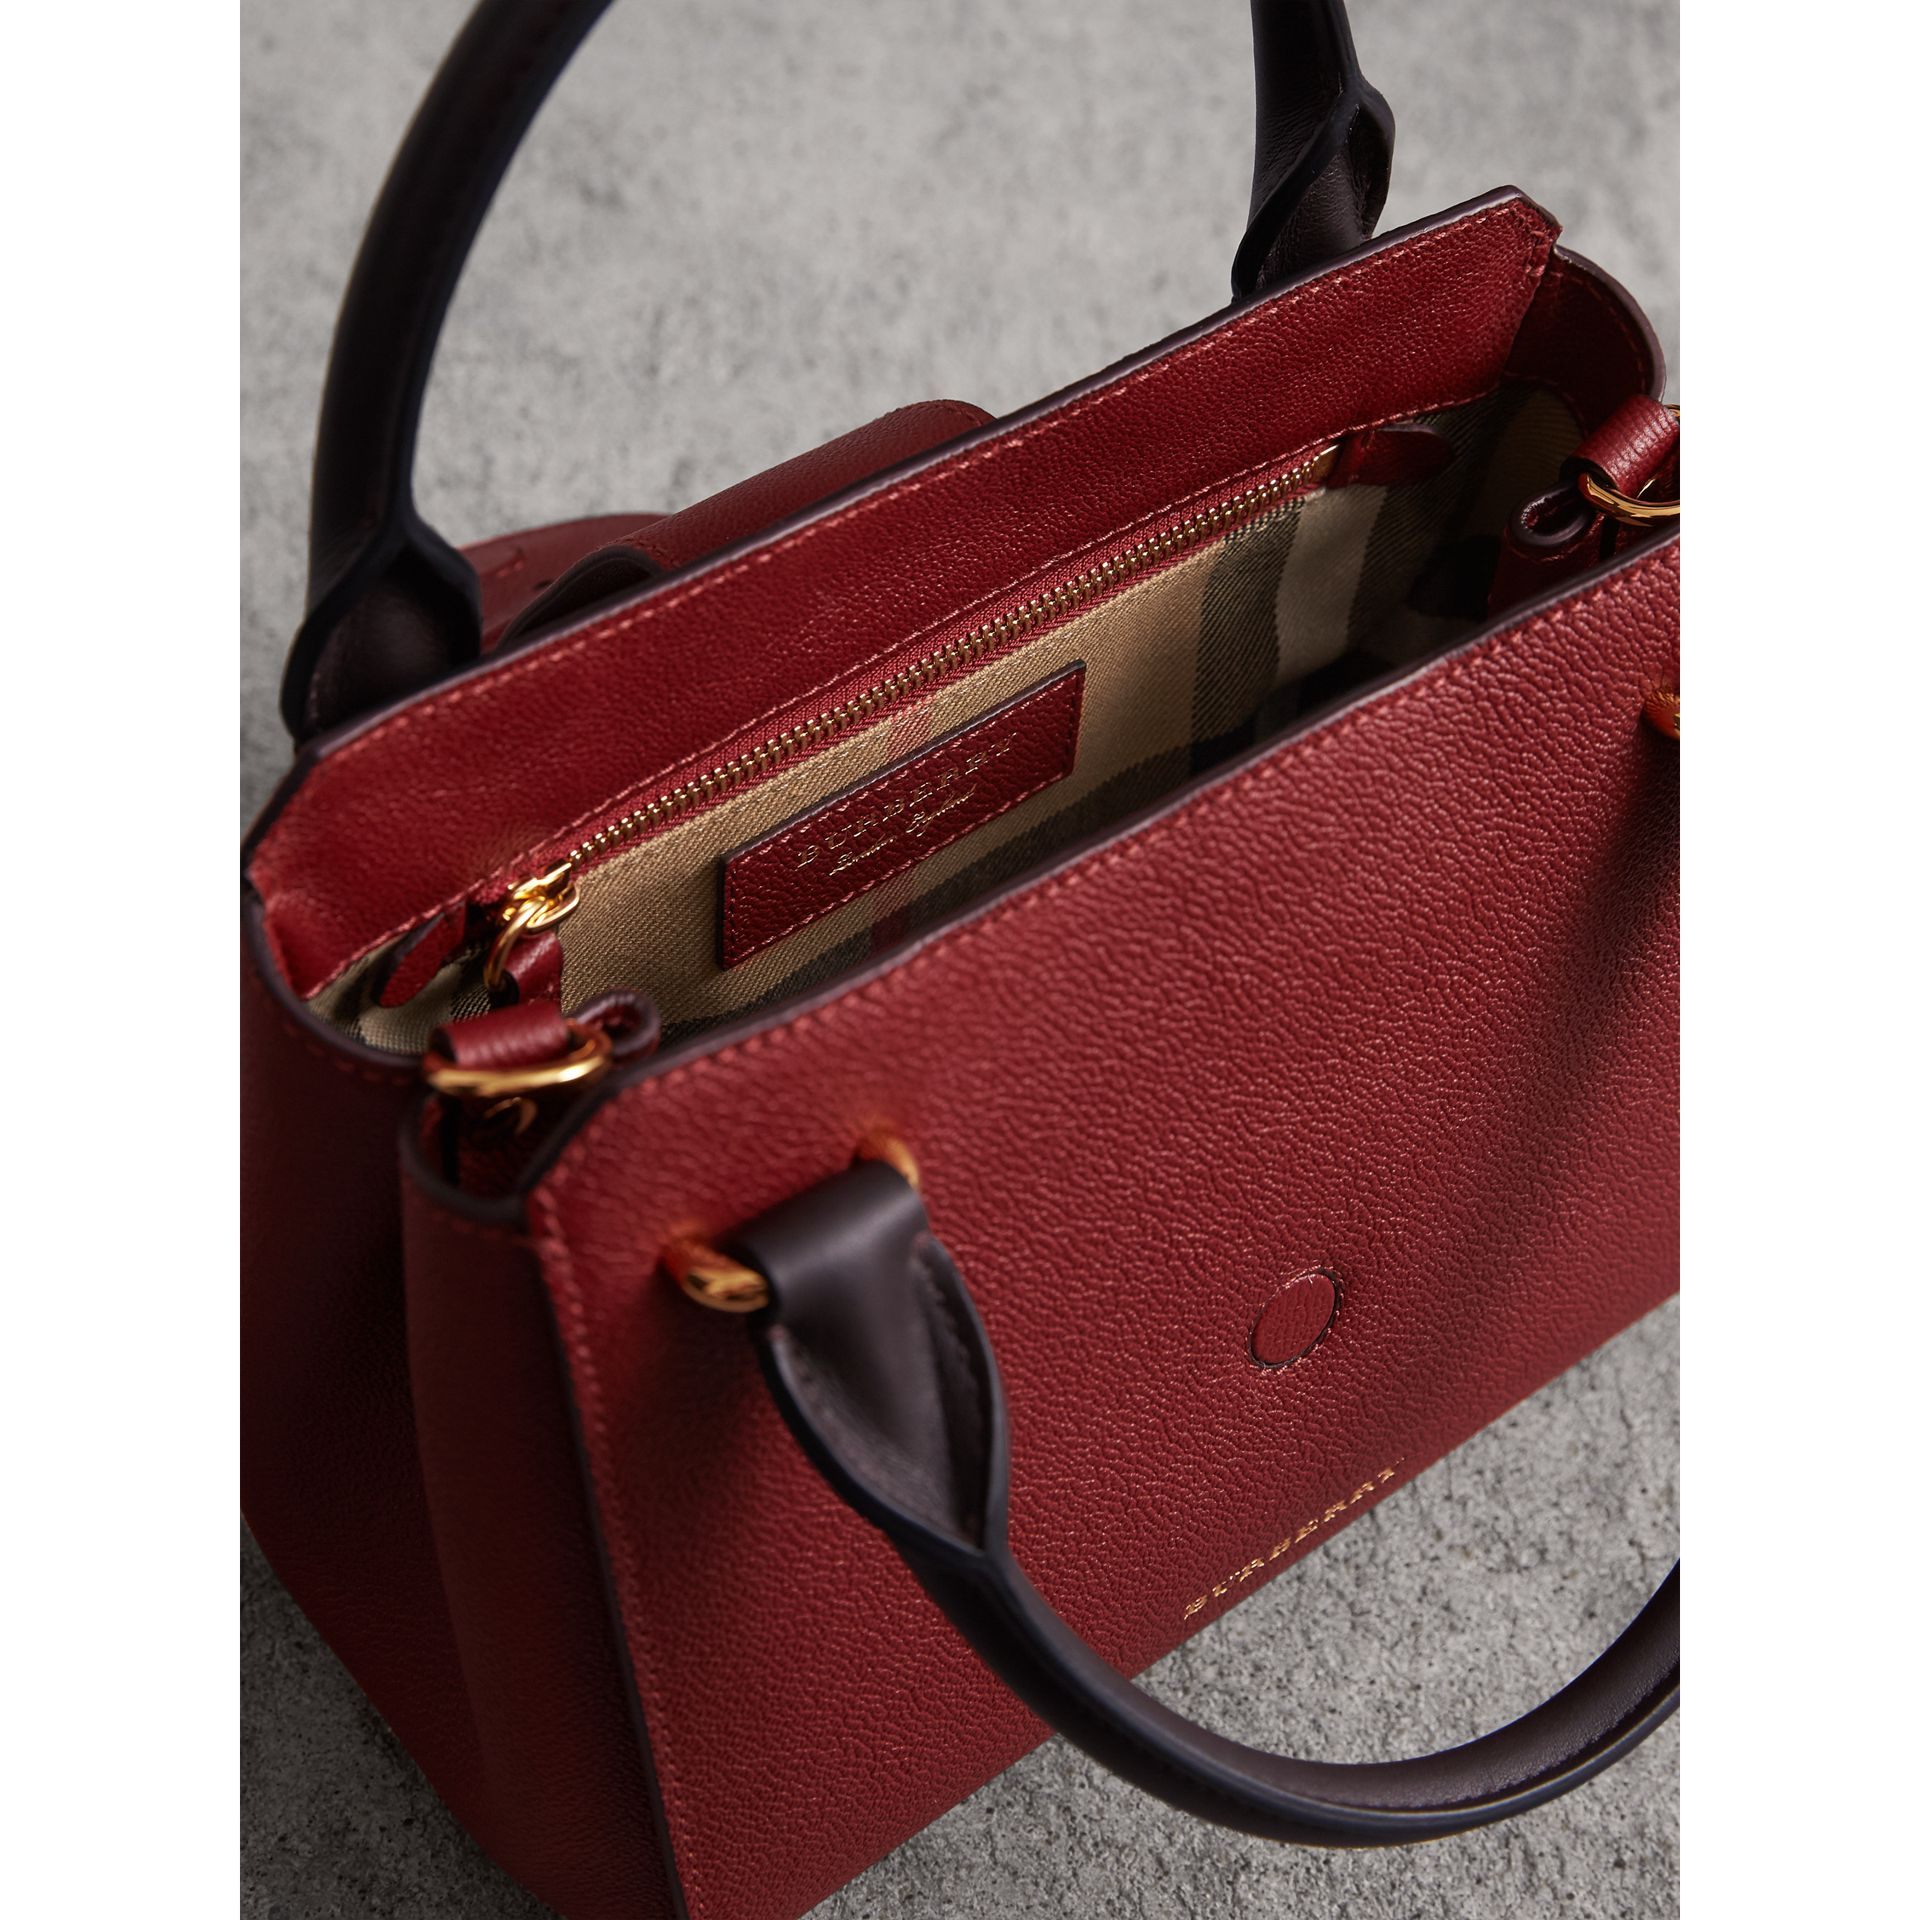 The Small Buckle Tote in Two-tone Leather in Burgundy - Women | Burberry United States - gallery image 6